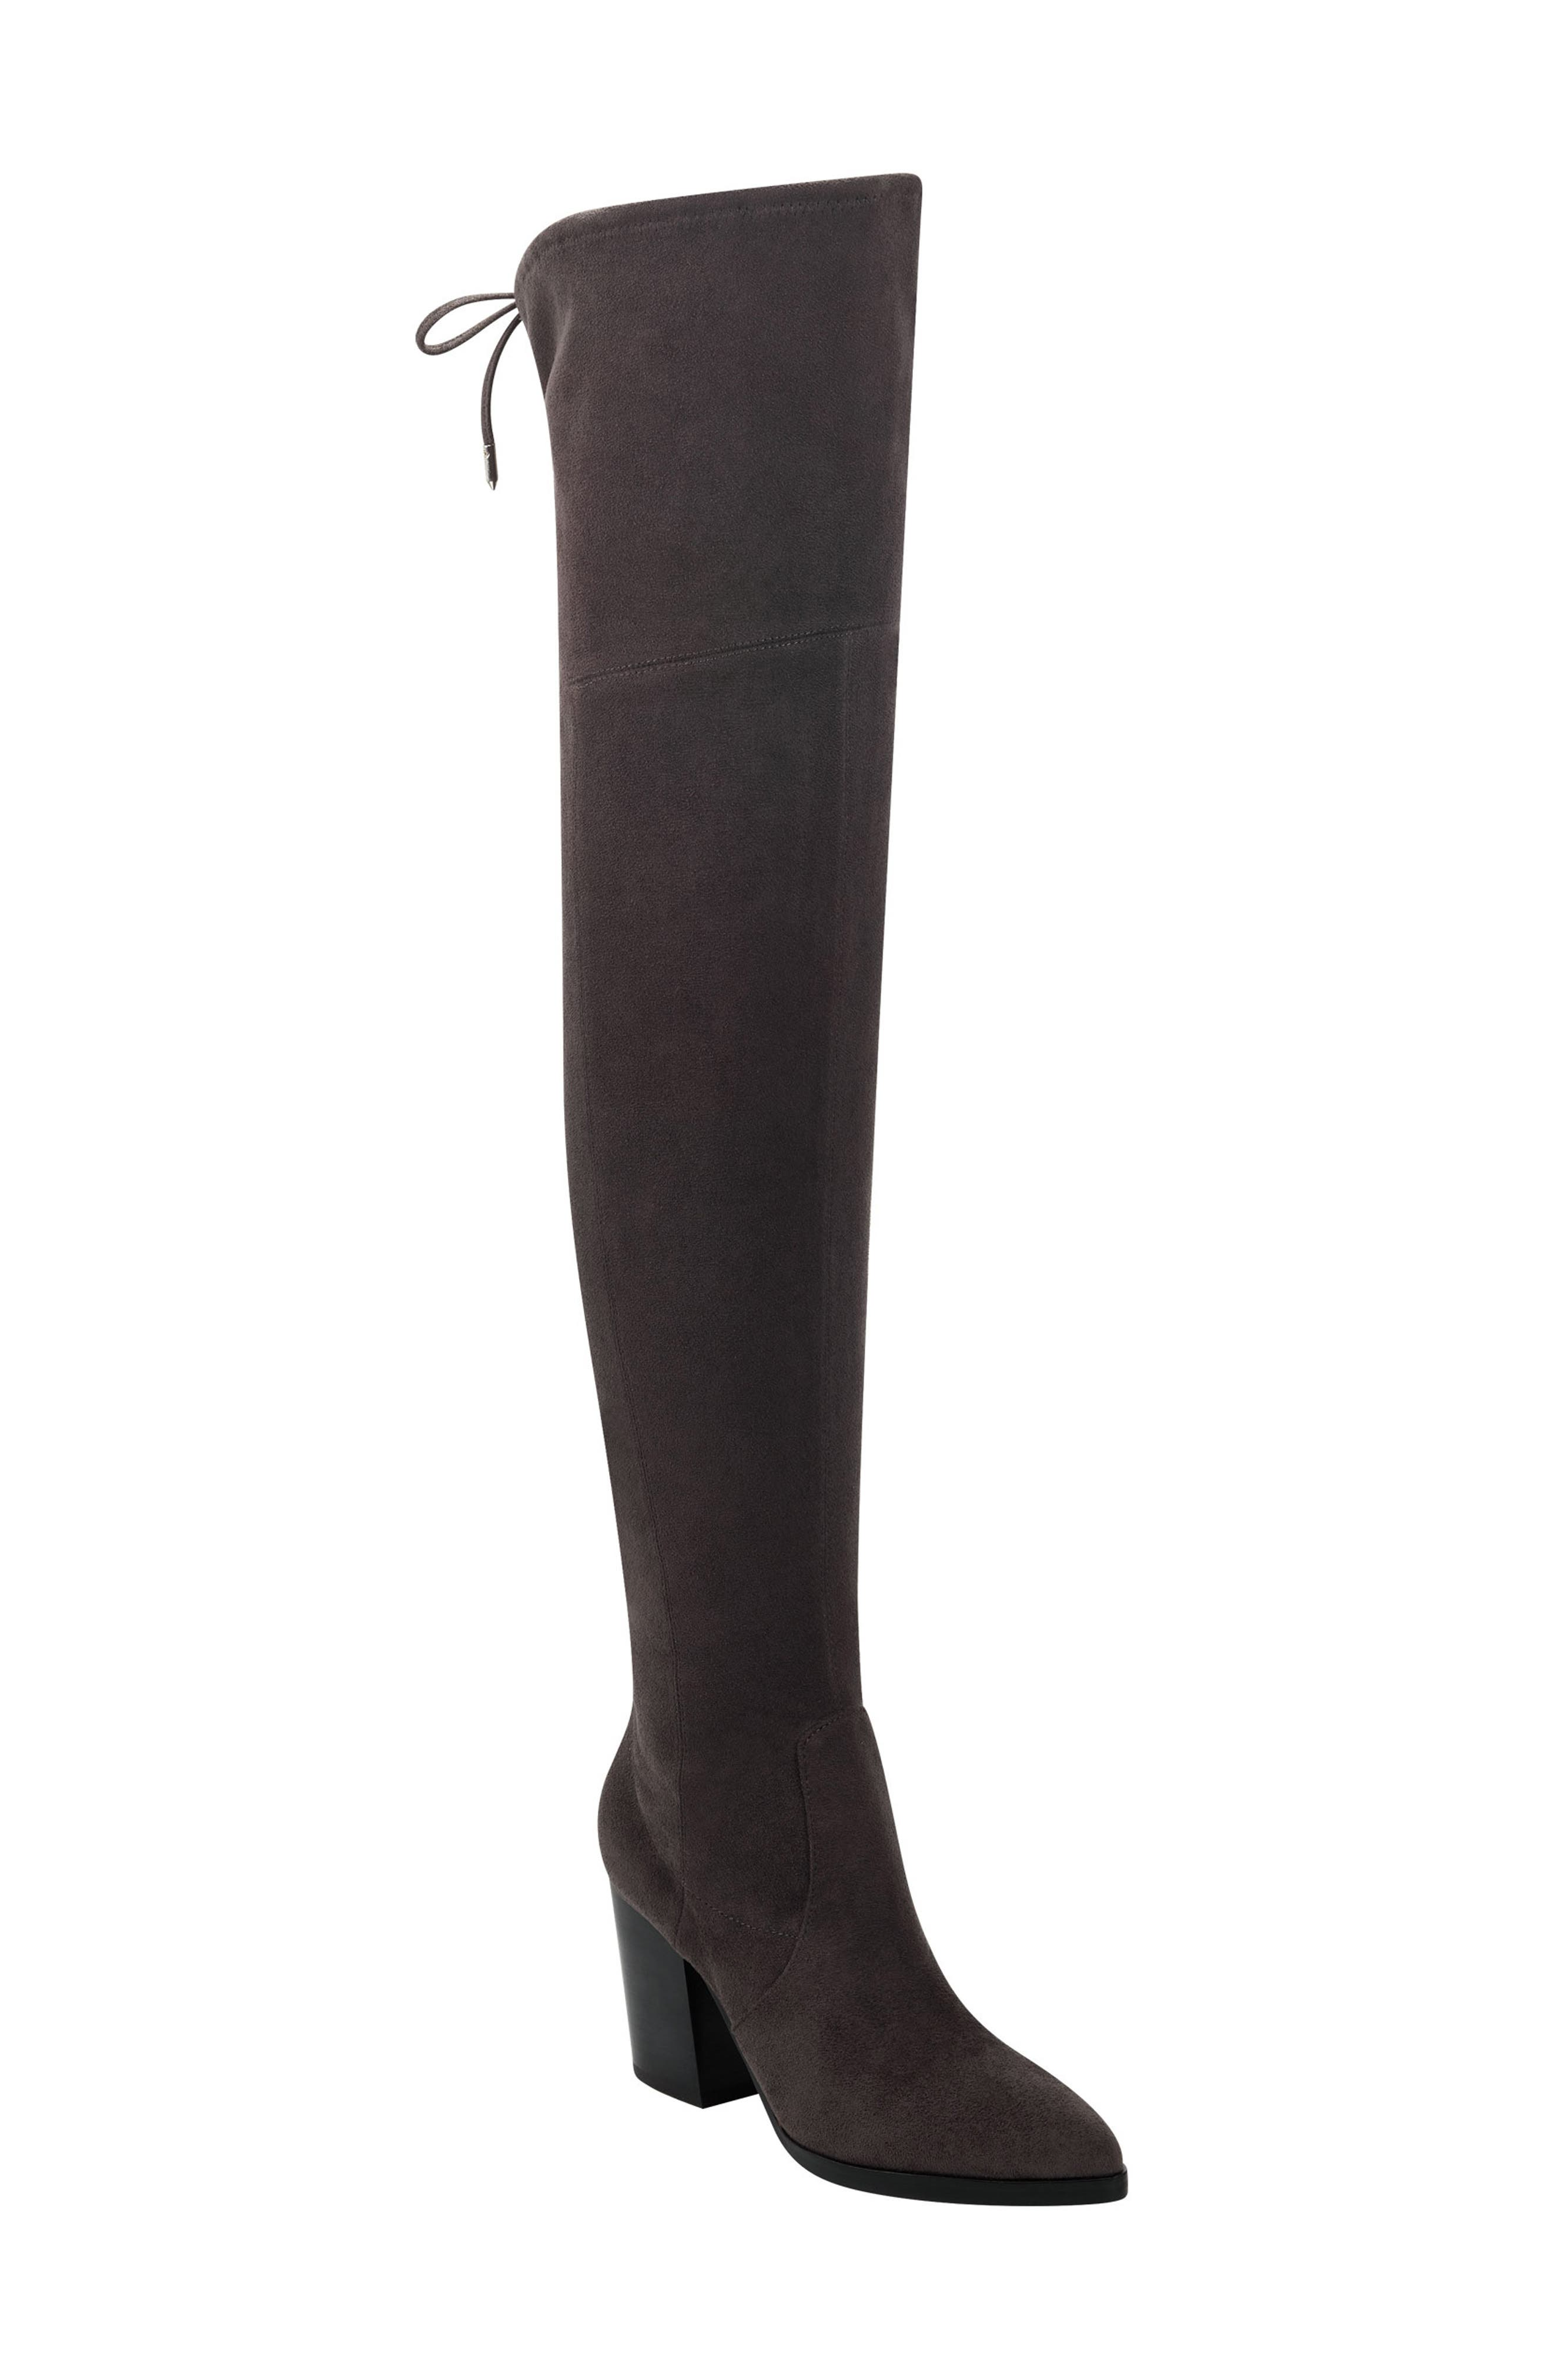 Image of Marc Fisher LTD Arletta Knee High Boot